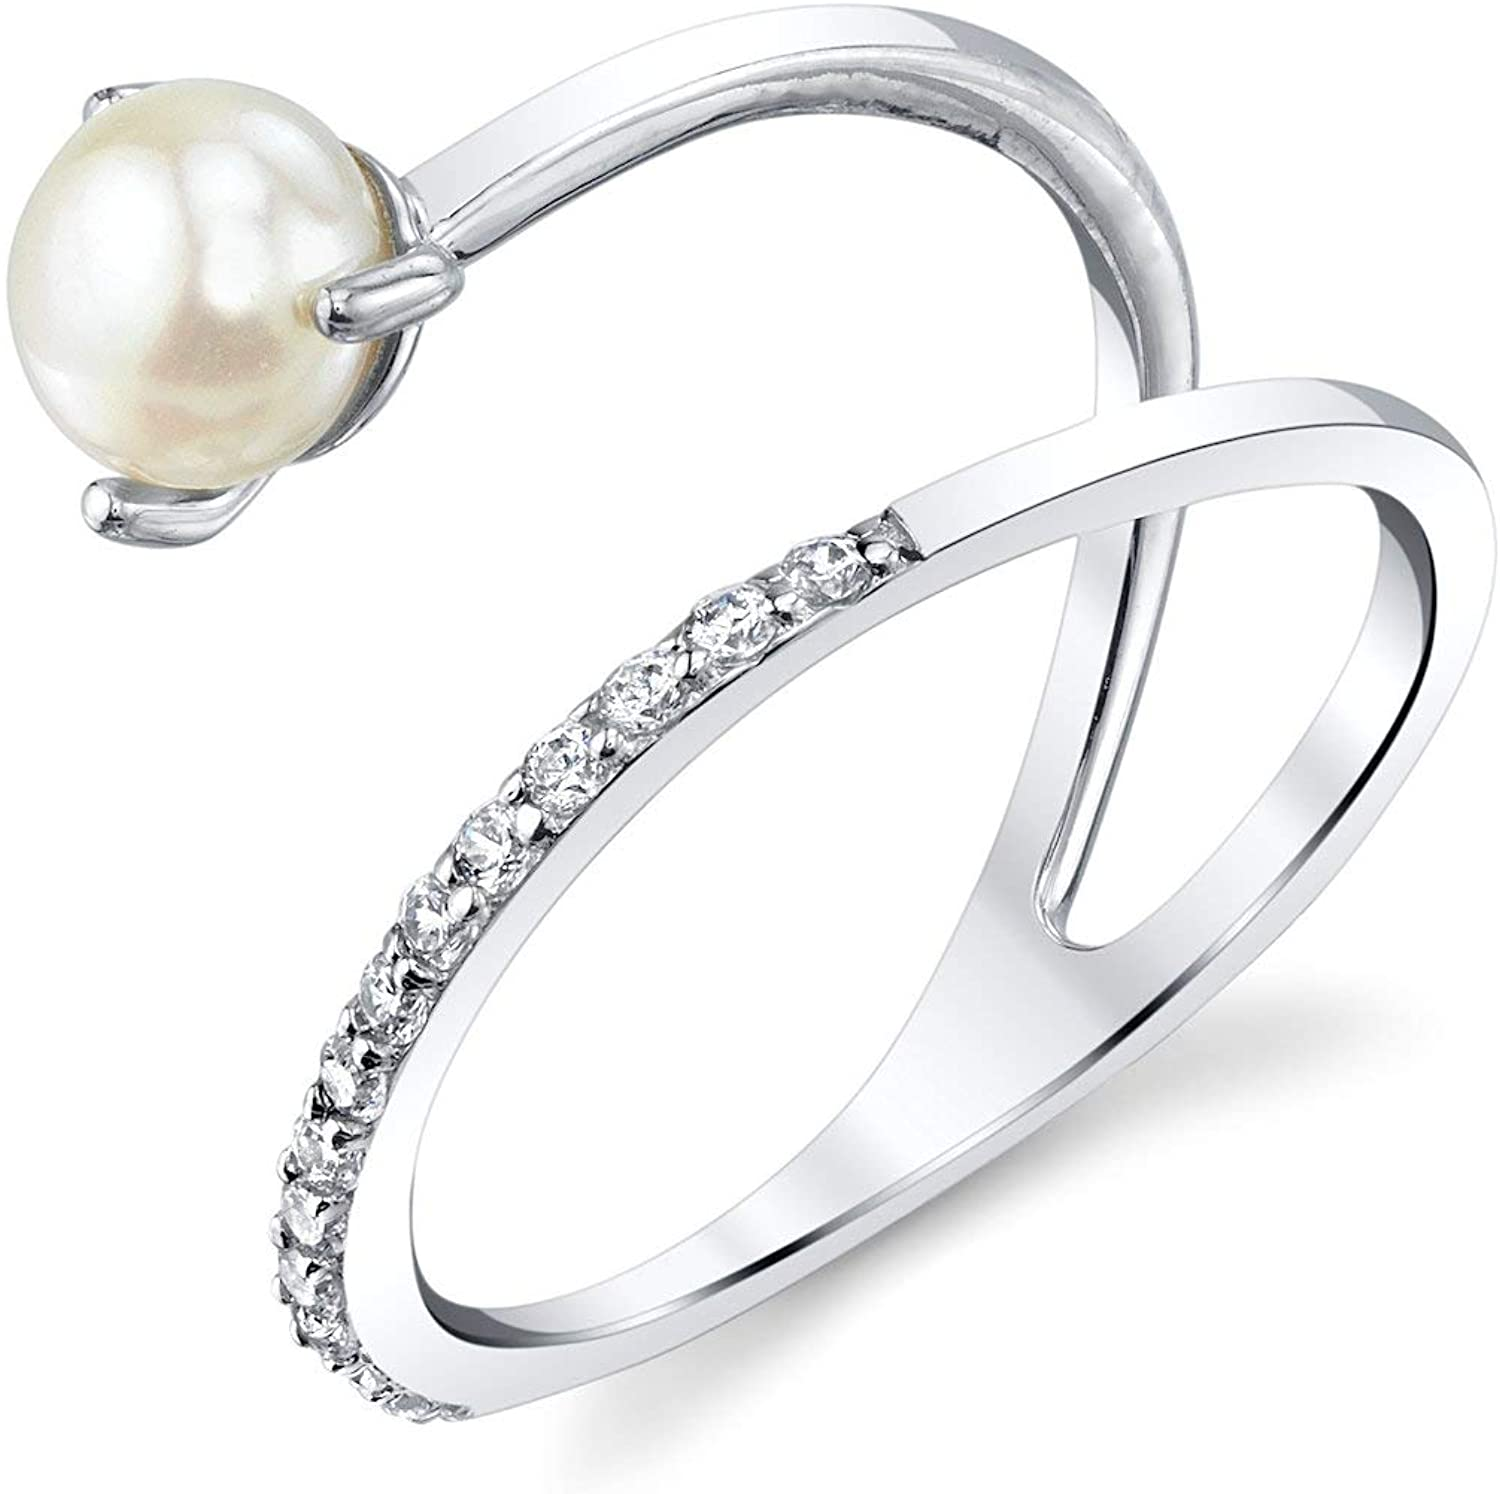 THE PEARL SOURCE 5-5.5mm Genuine White Freshwater Cultured Pearl & Cubic Zirconia Millie Ring for Women